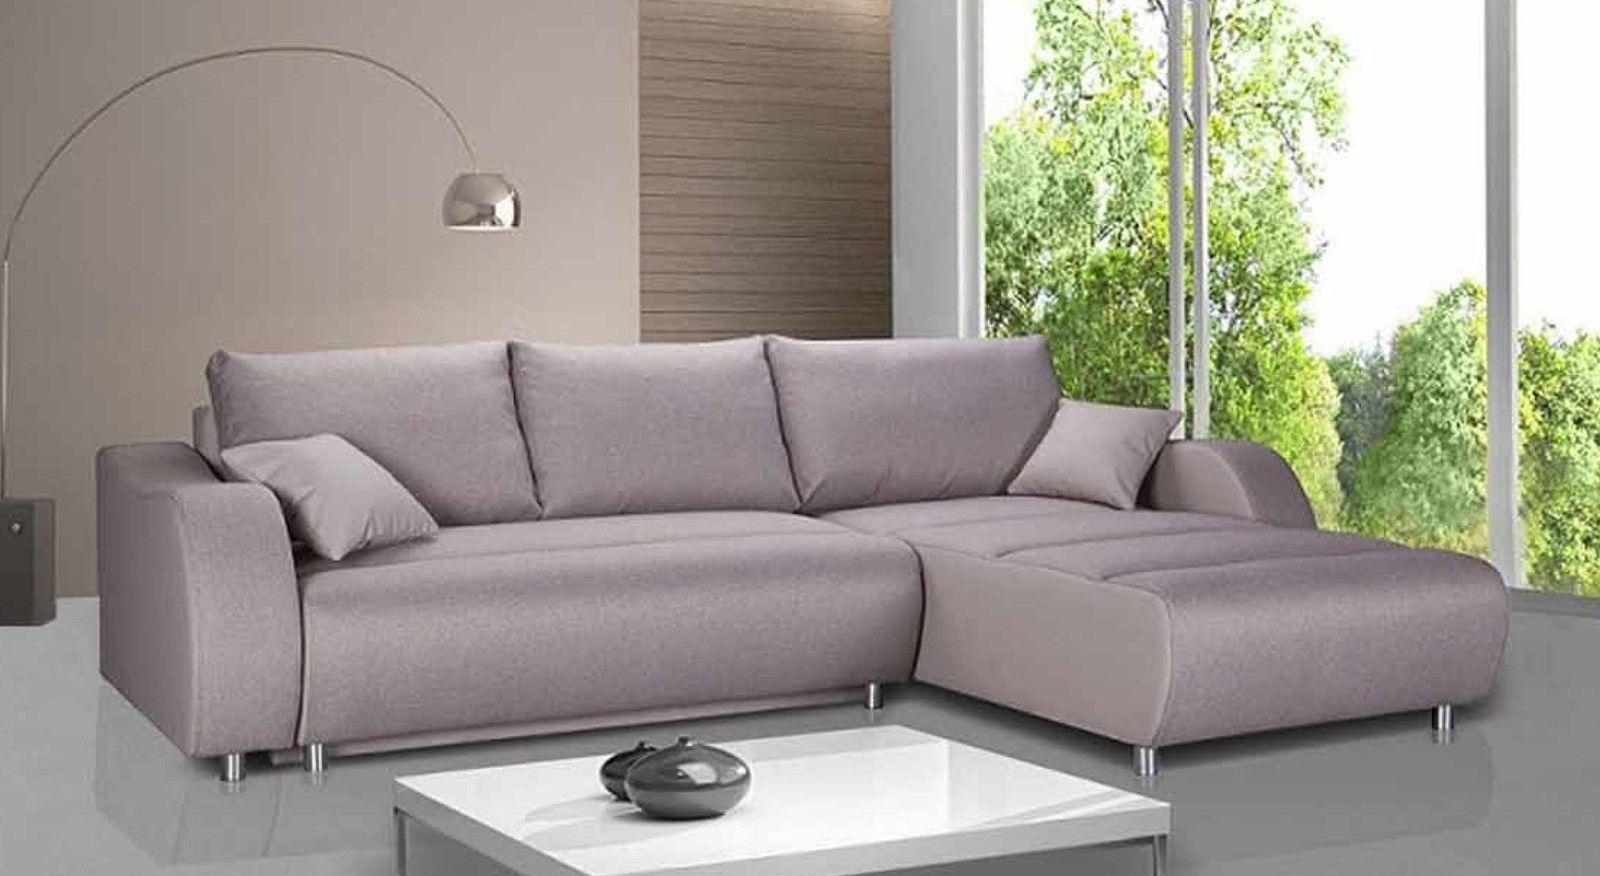 Unusual Sofas Uk – Leather Sectional Sofa Within Unusual Sofas (View 12 of 20)